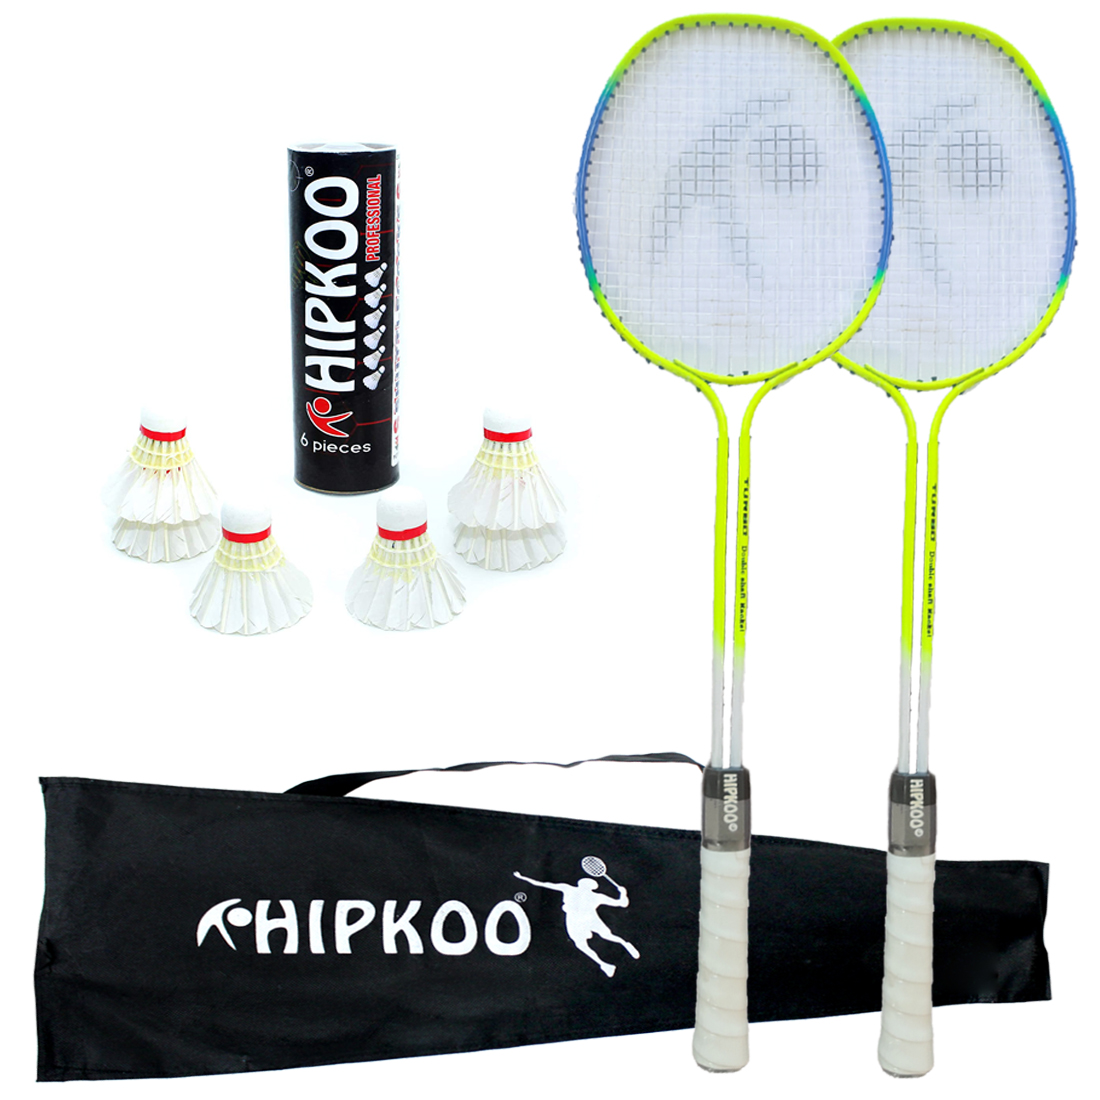 Hipkoo Sports Turbo Double Shaft Badminton Rackets, 6 White Feather Shuttles With Cover Badminton Kit